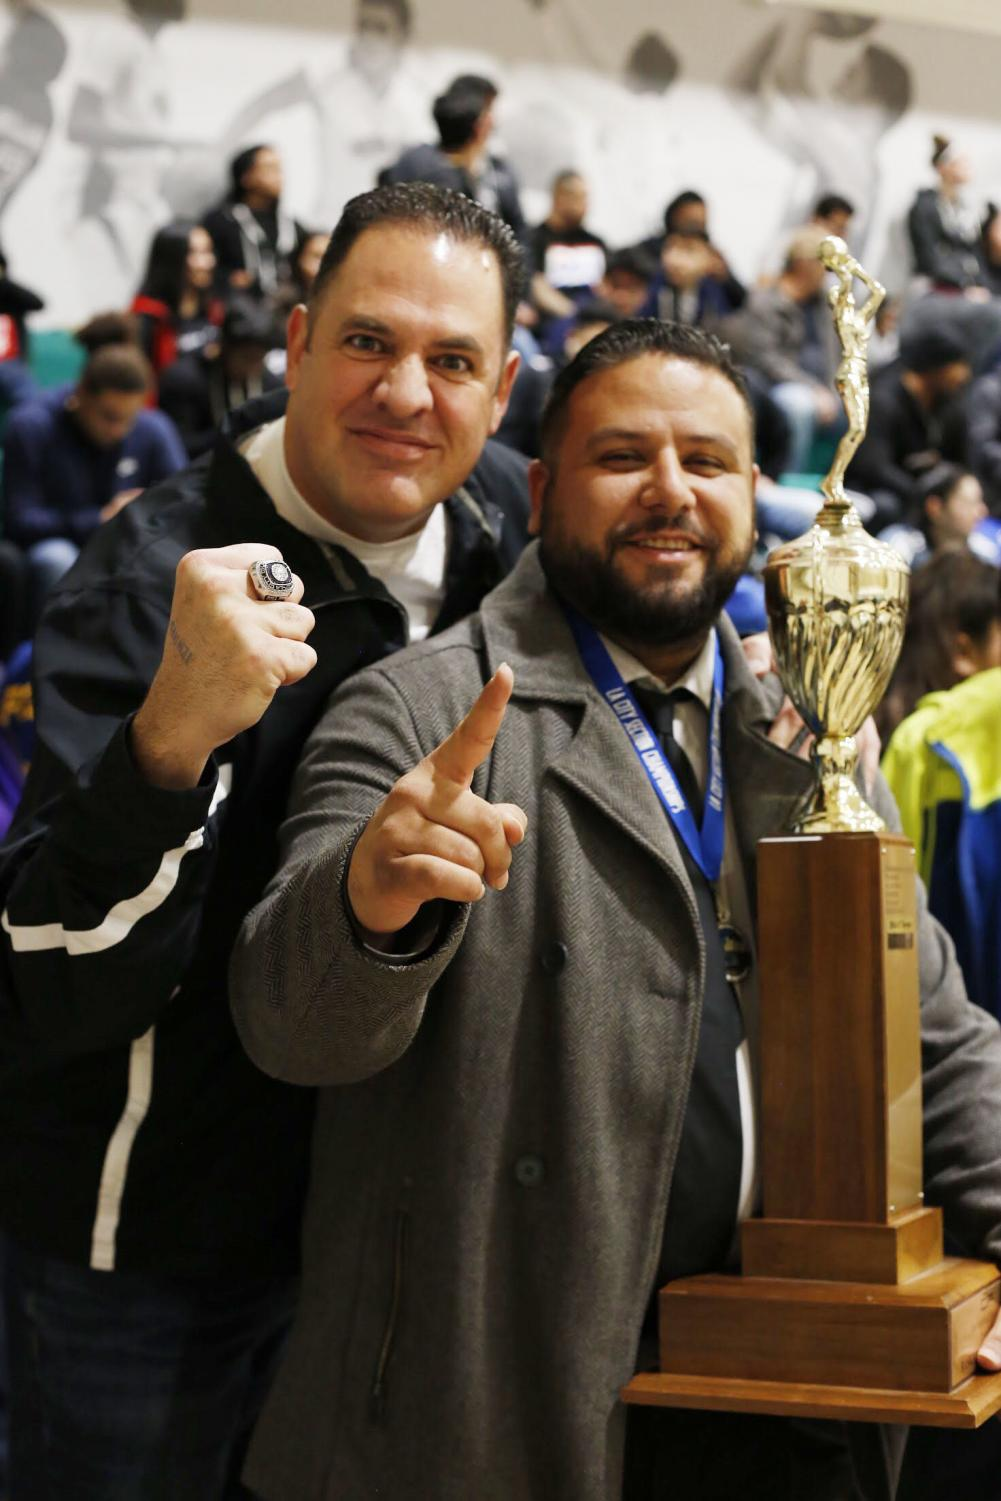 Coach+Castillo+showing+the+Championships+trophy.+